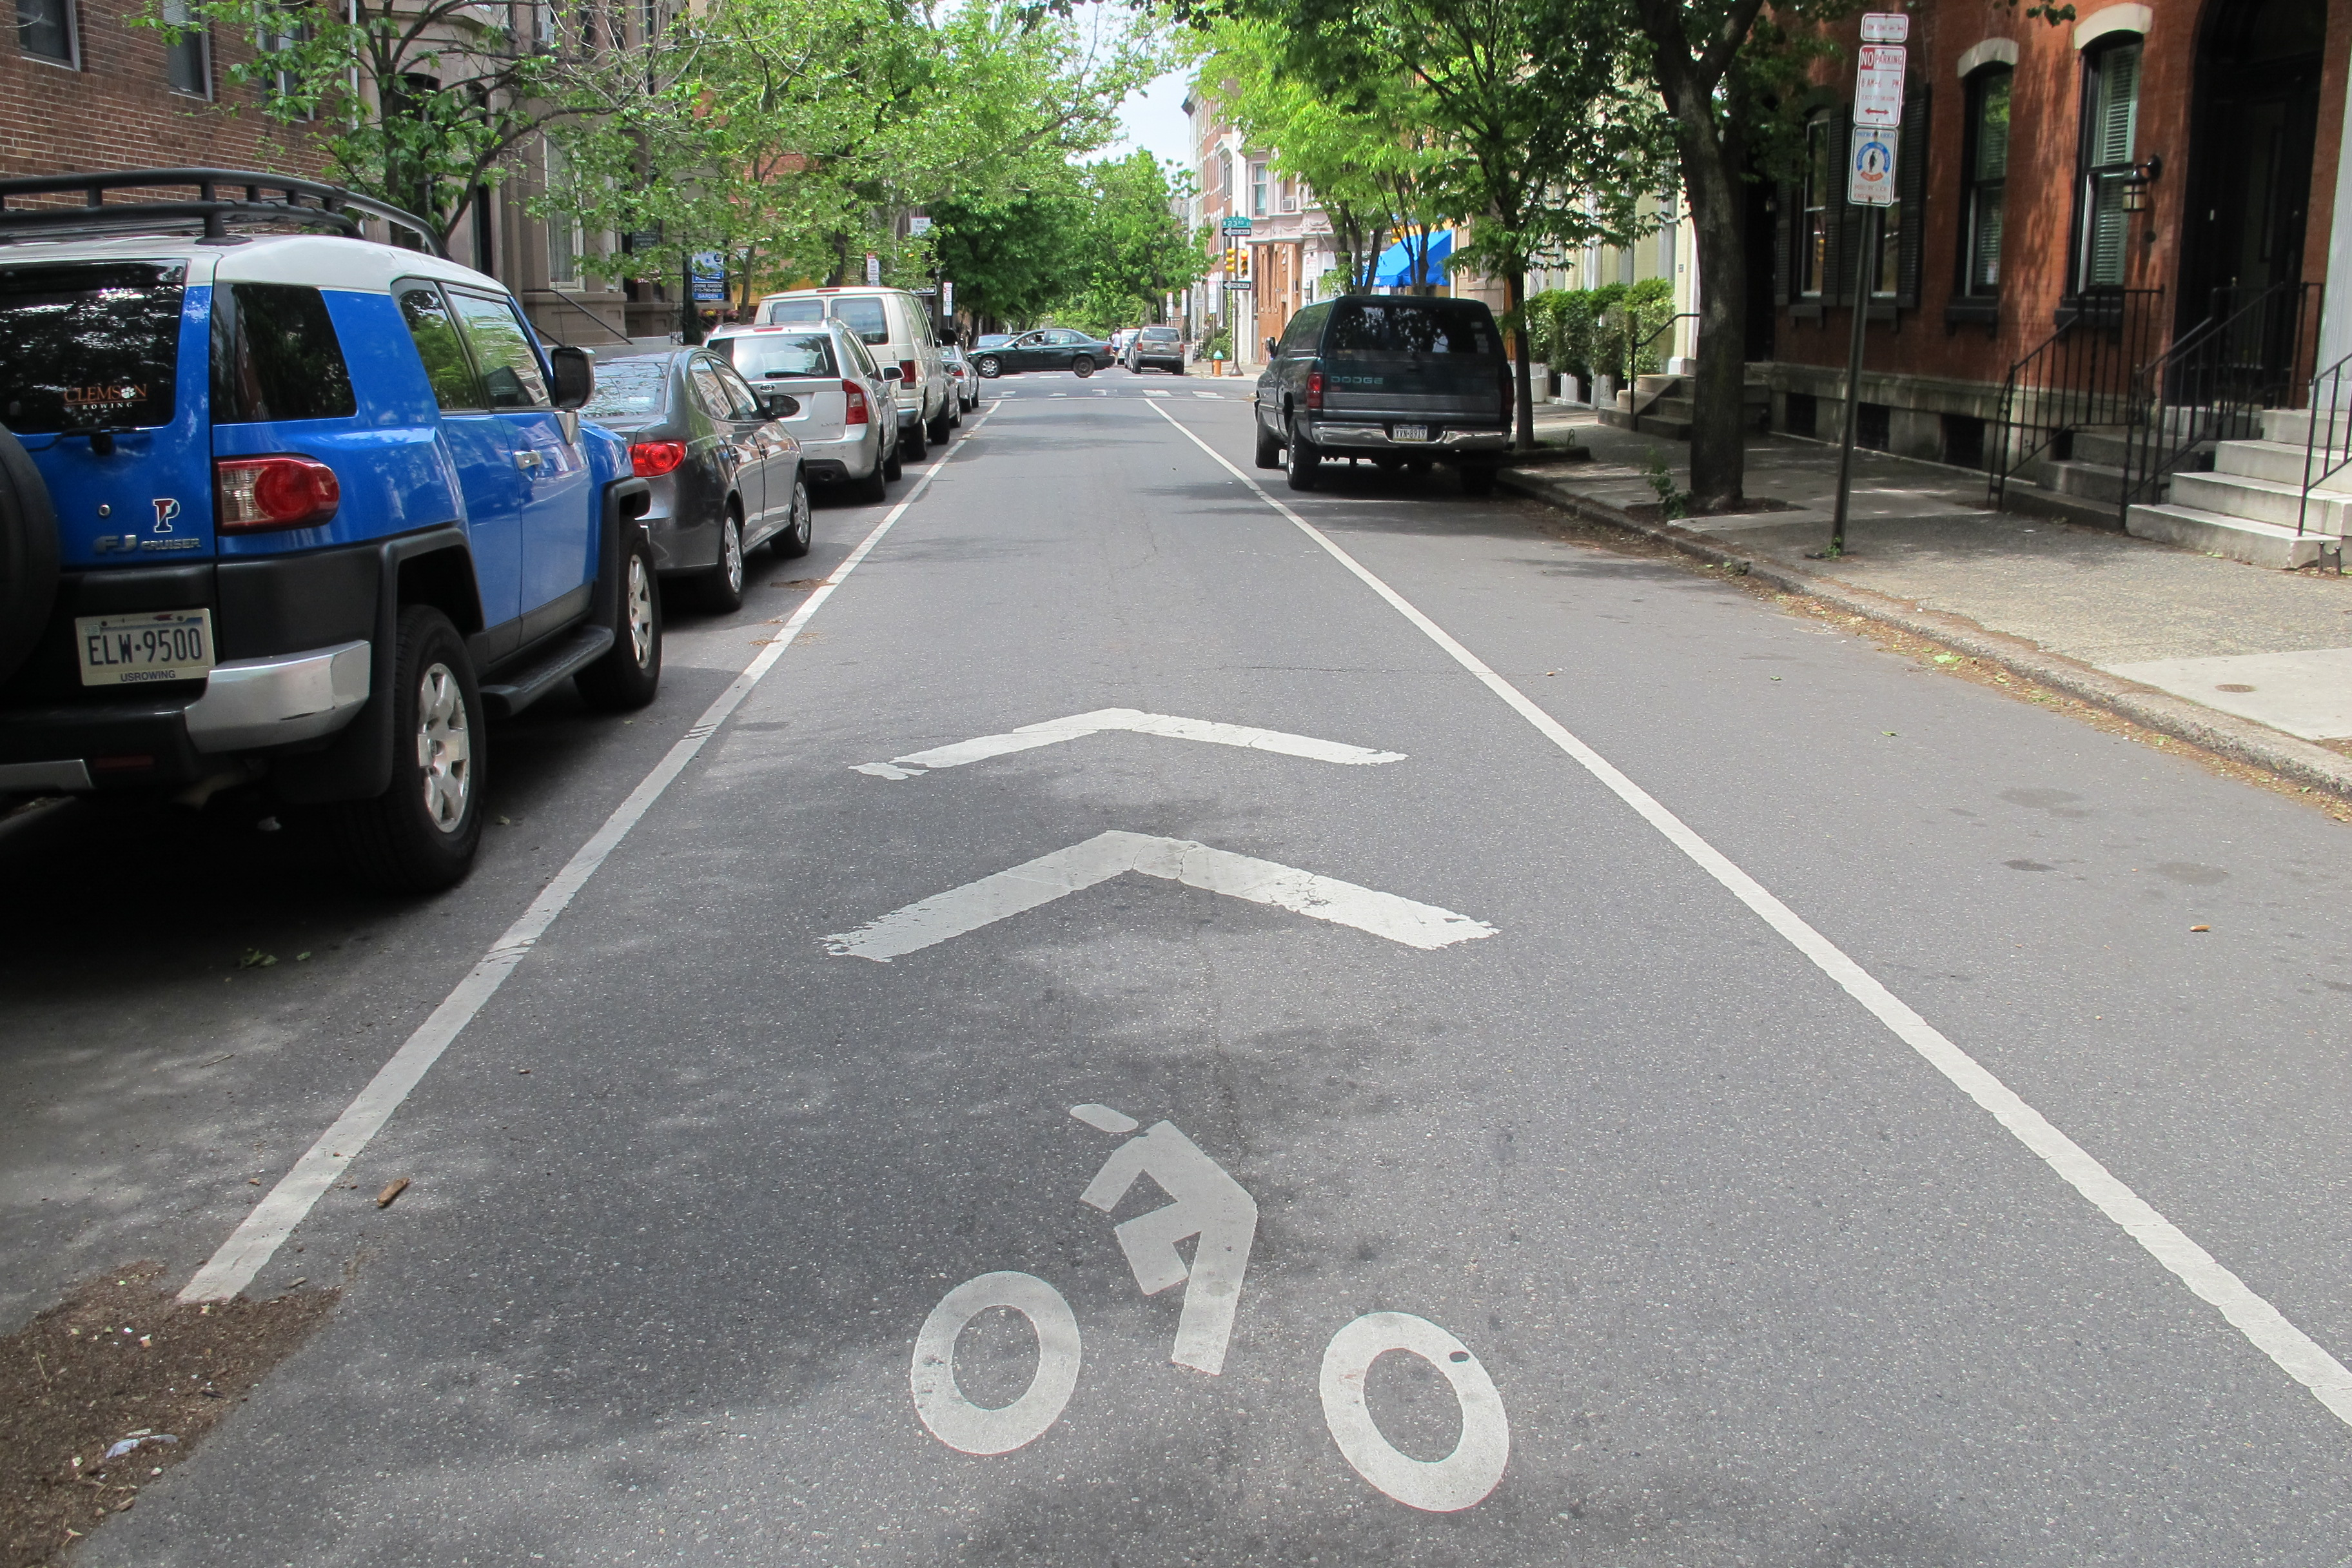 Sharrows , like this one on Spruce Street, are meant to direct bicycle traffic and instruct drivers and cyclists to share the road.